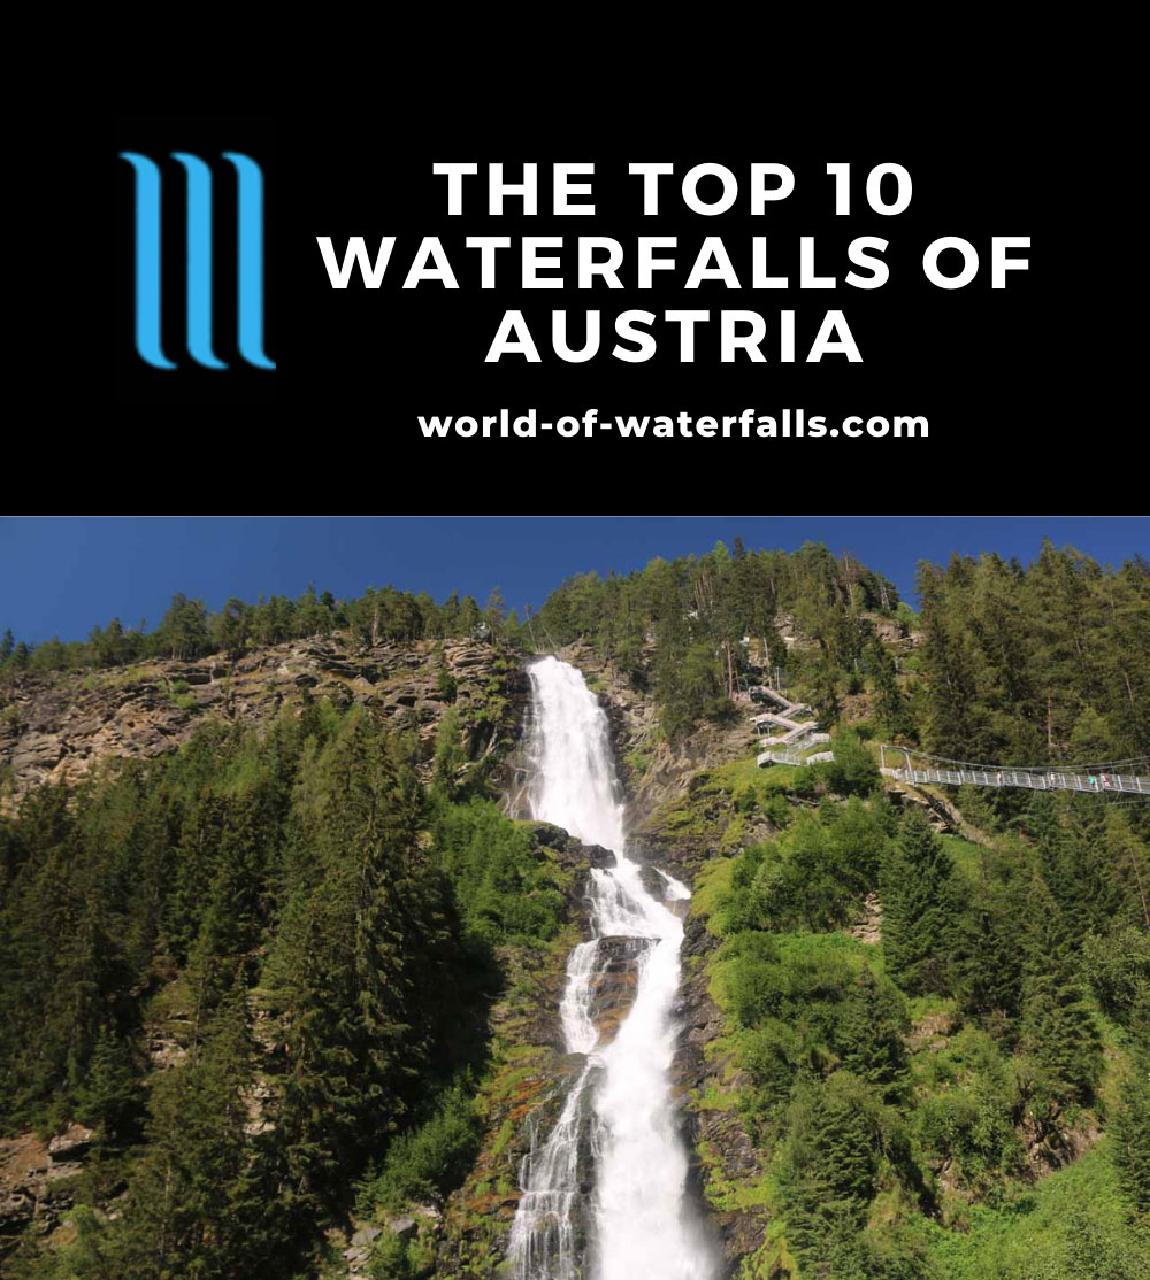 The Top 10 Waterfalls of Austria